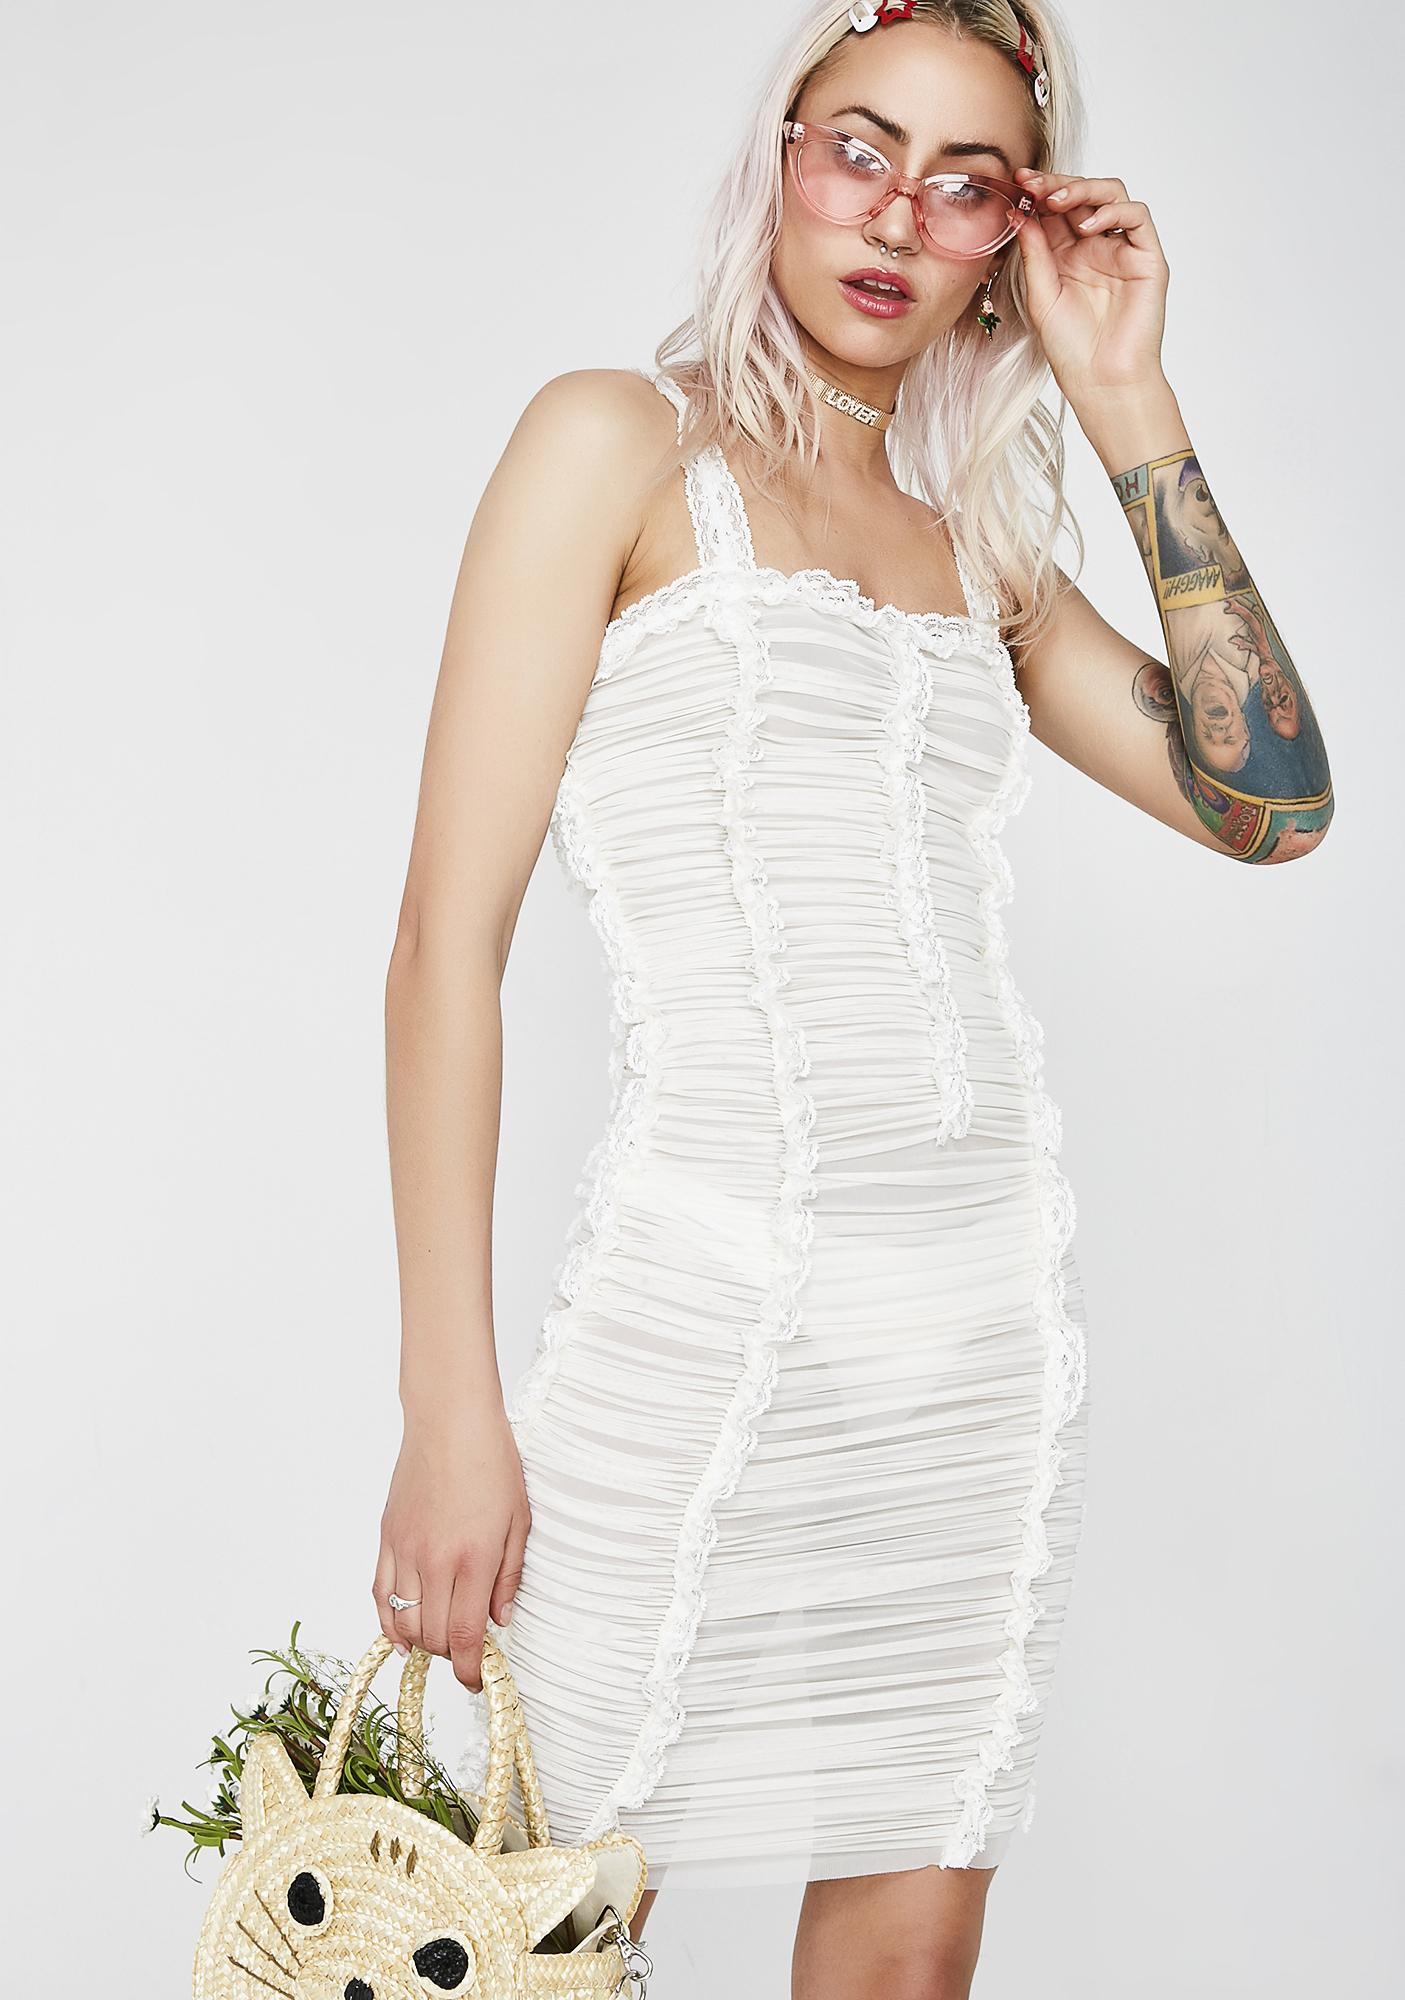 Kiki Riki Wifey Material Slip Dress